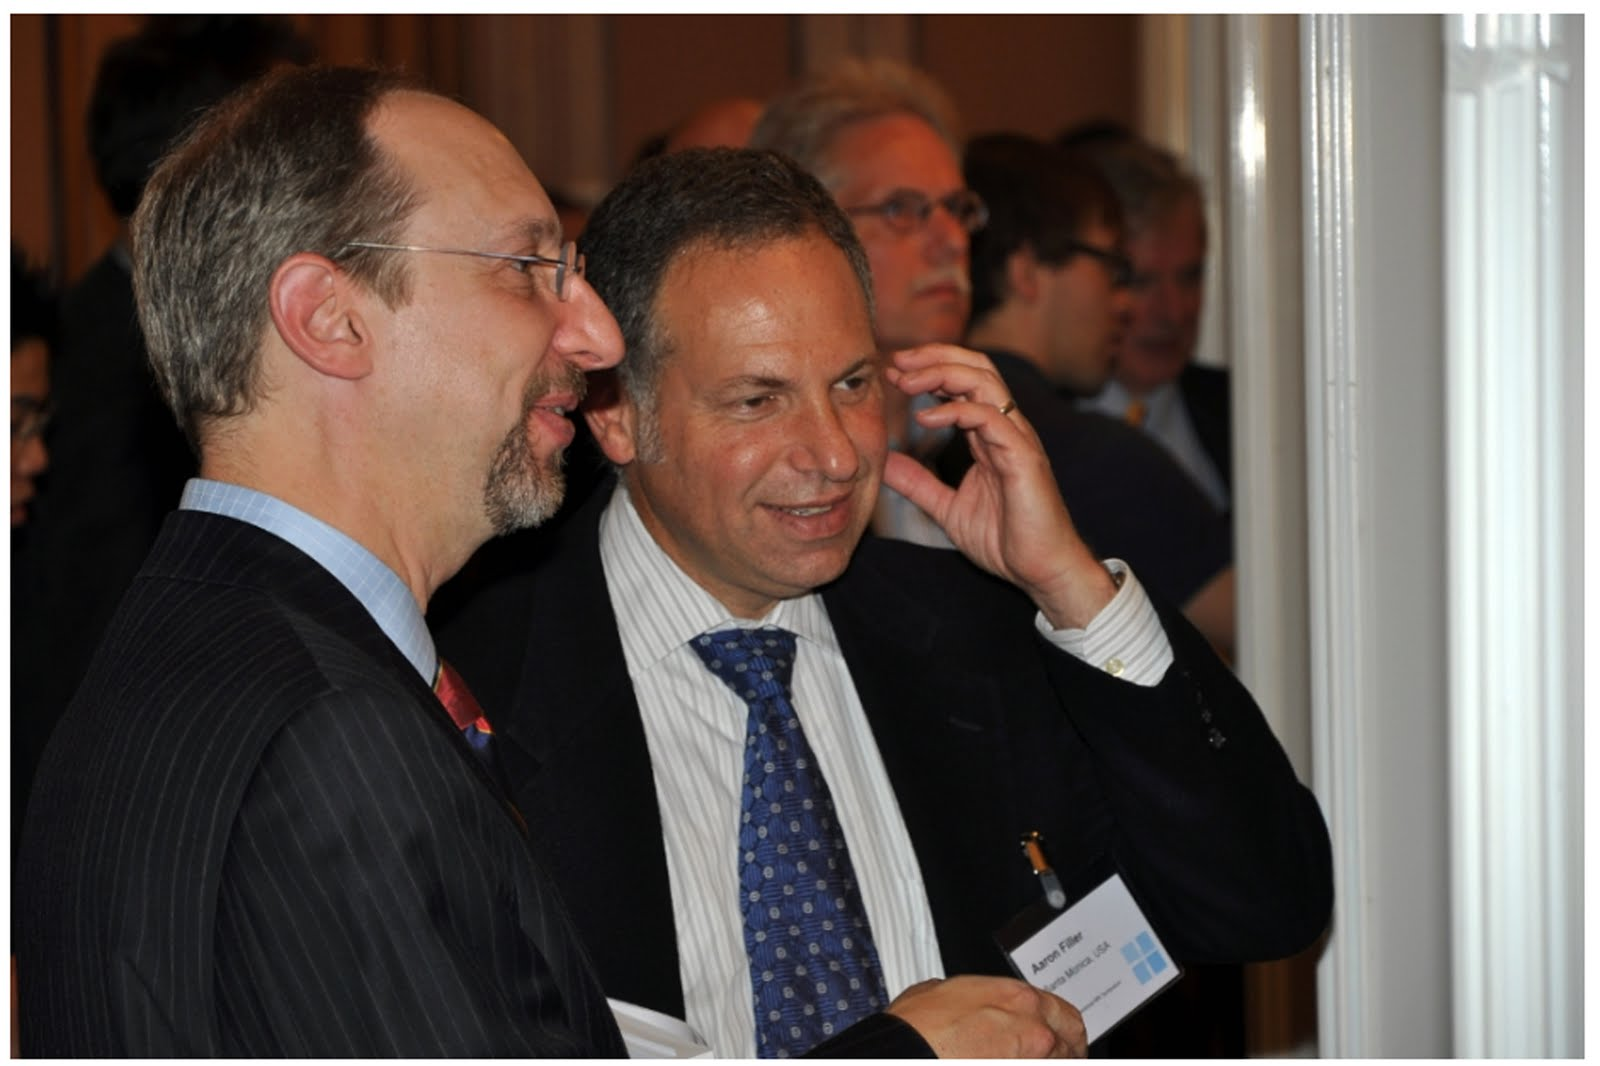 Aaron G. Filler, MD, PhD, FRCS (center) at the Leipzig iMR meeting in September 2010 discussing his work with Jonathan S. Lewin, MD (Left) Chairman of Radiology at Johns Hopkins University and Professor Jens Frahm, PhD (Right) inventor of CHESS and FLASH imaging and Director of the Biomedicine NMR Group at the Max Planck Institute for Biophysical Chemistry.